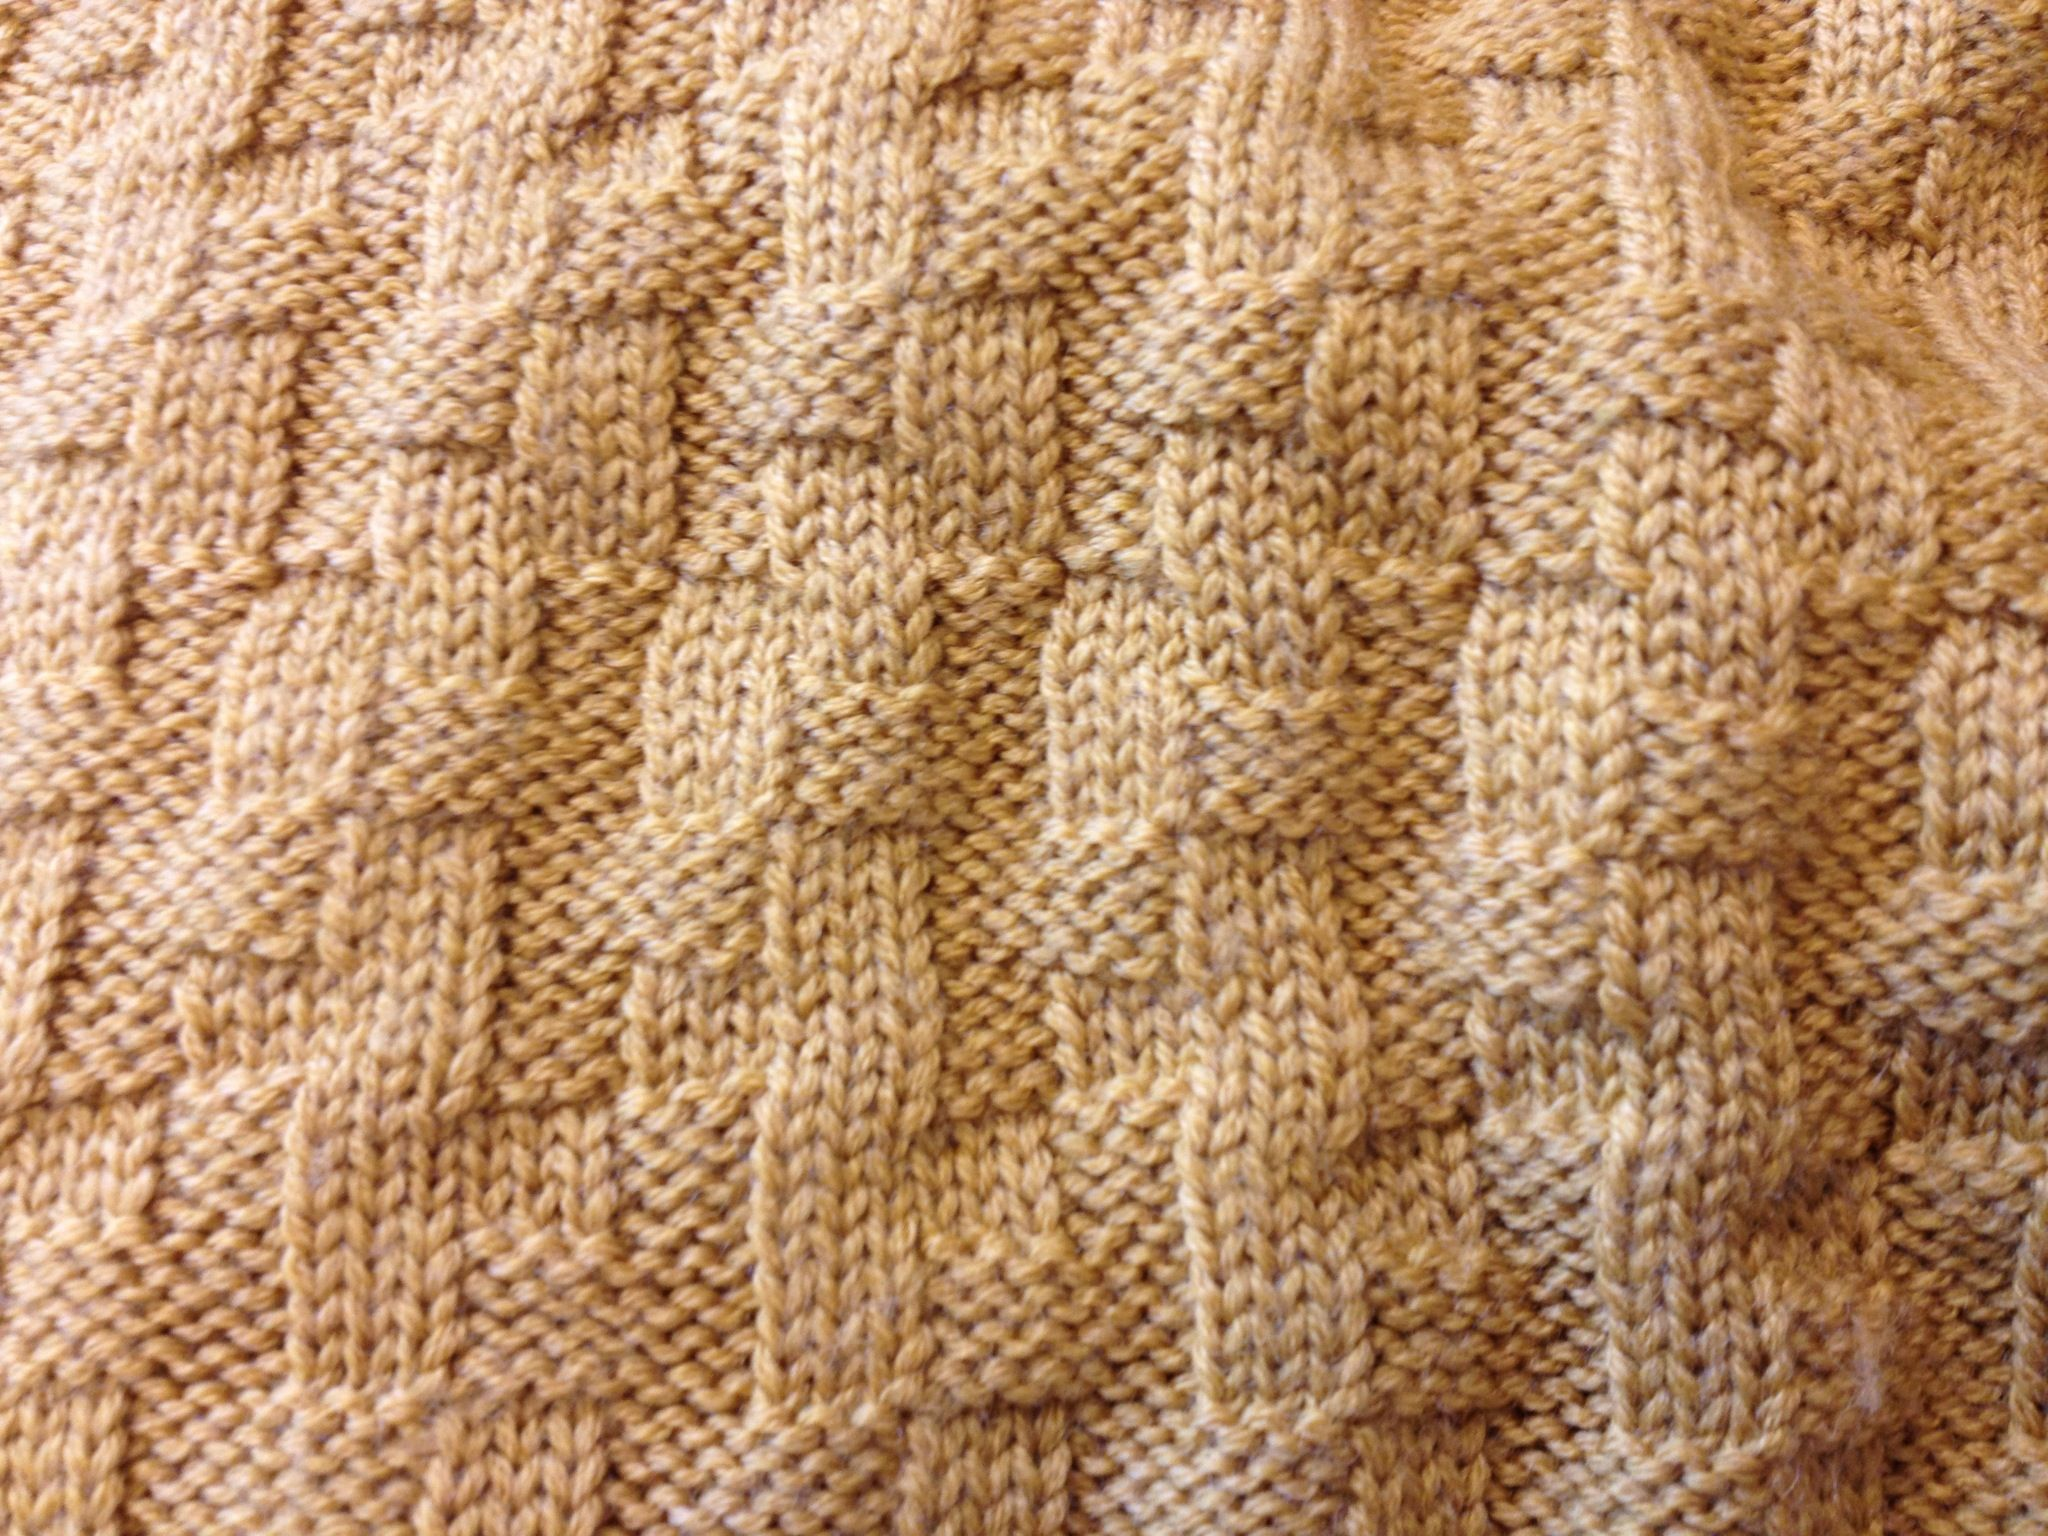 Knitting from COS